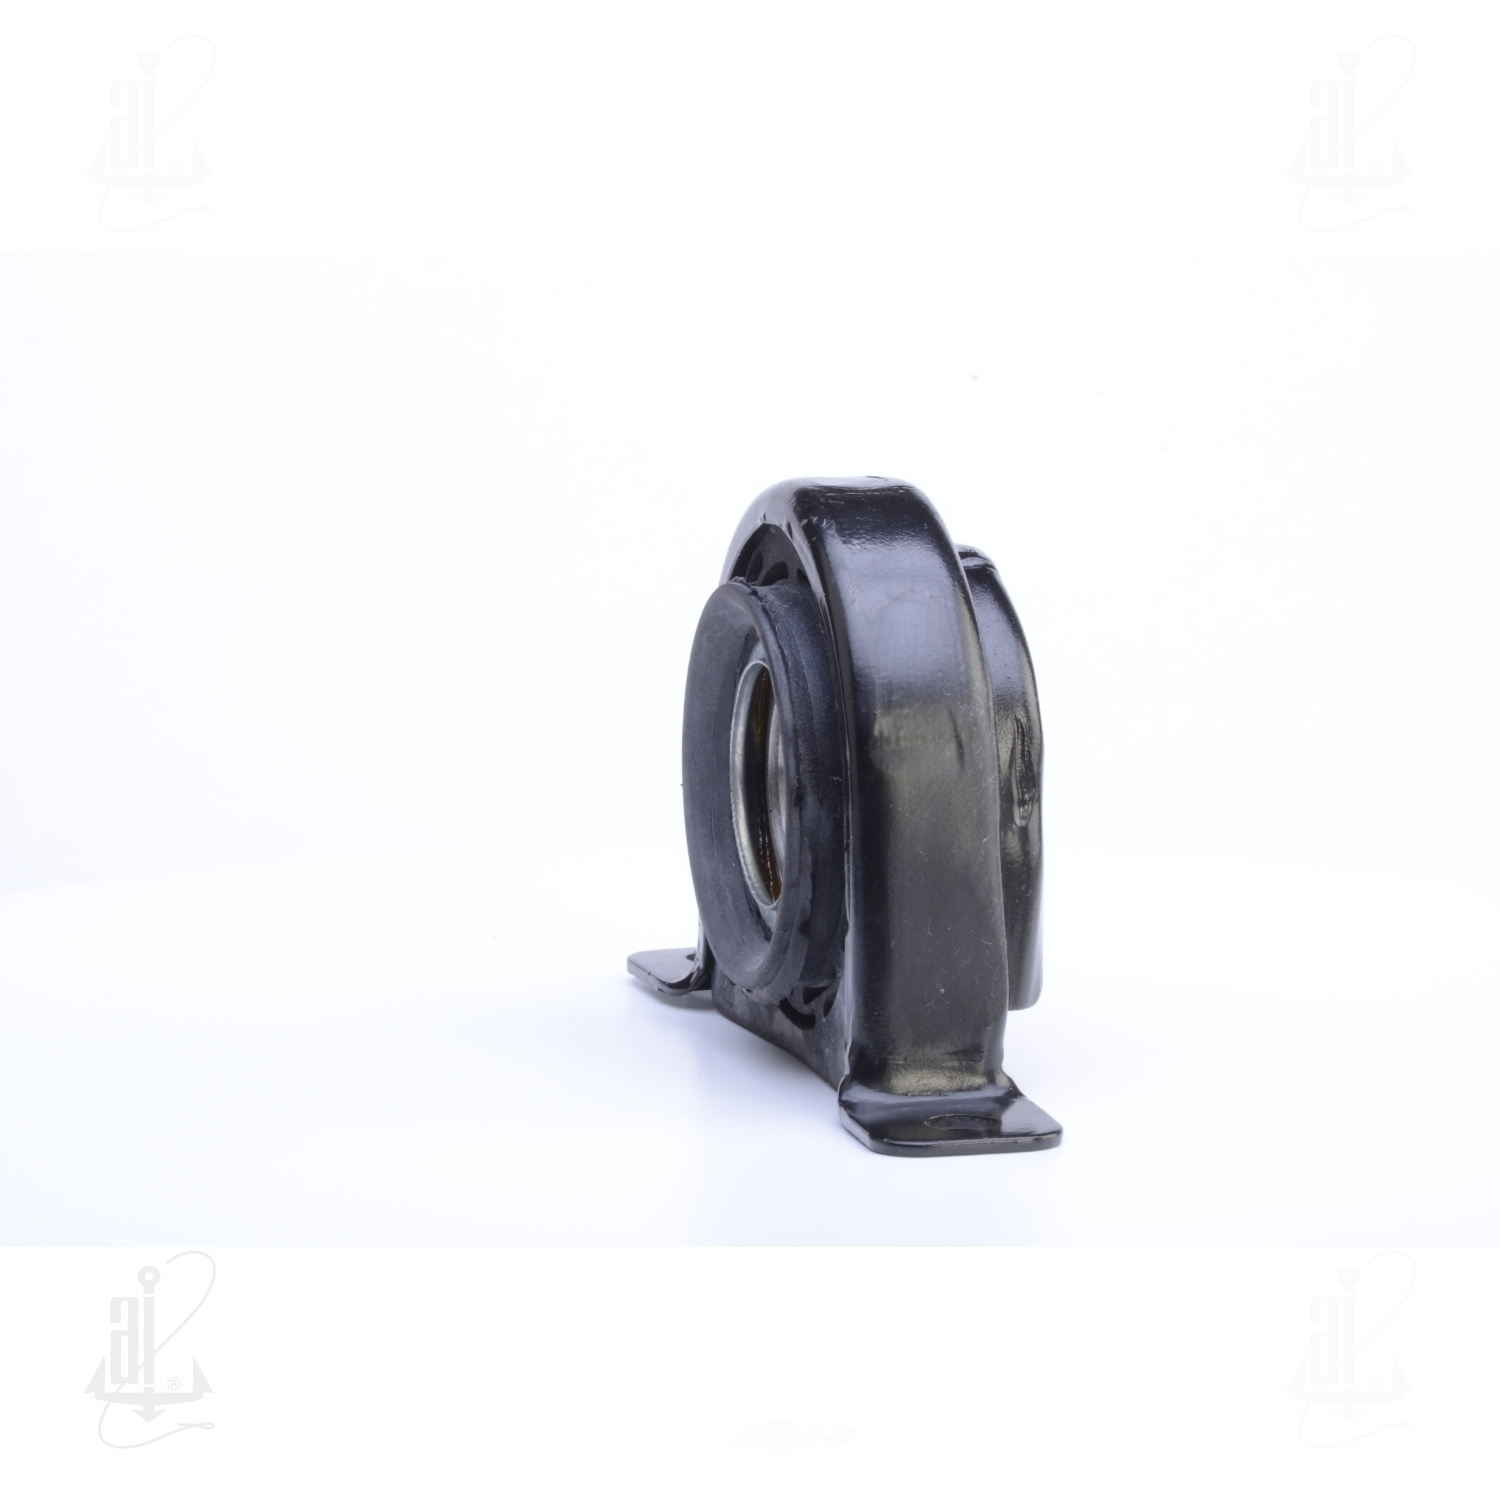 ANCHOR - Drive Shaft Center Support Bearing - ANH 6094